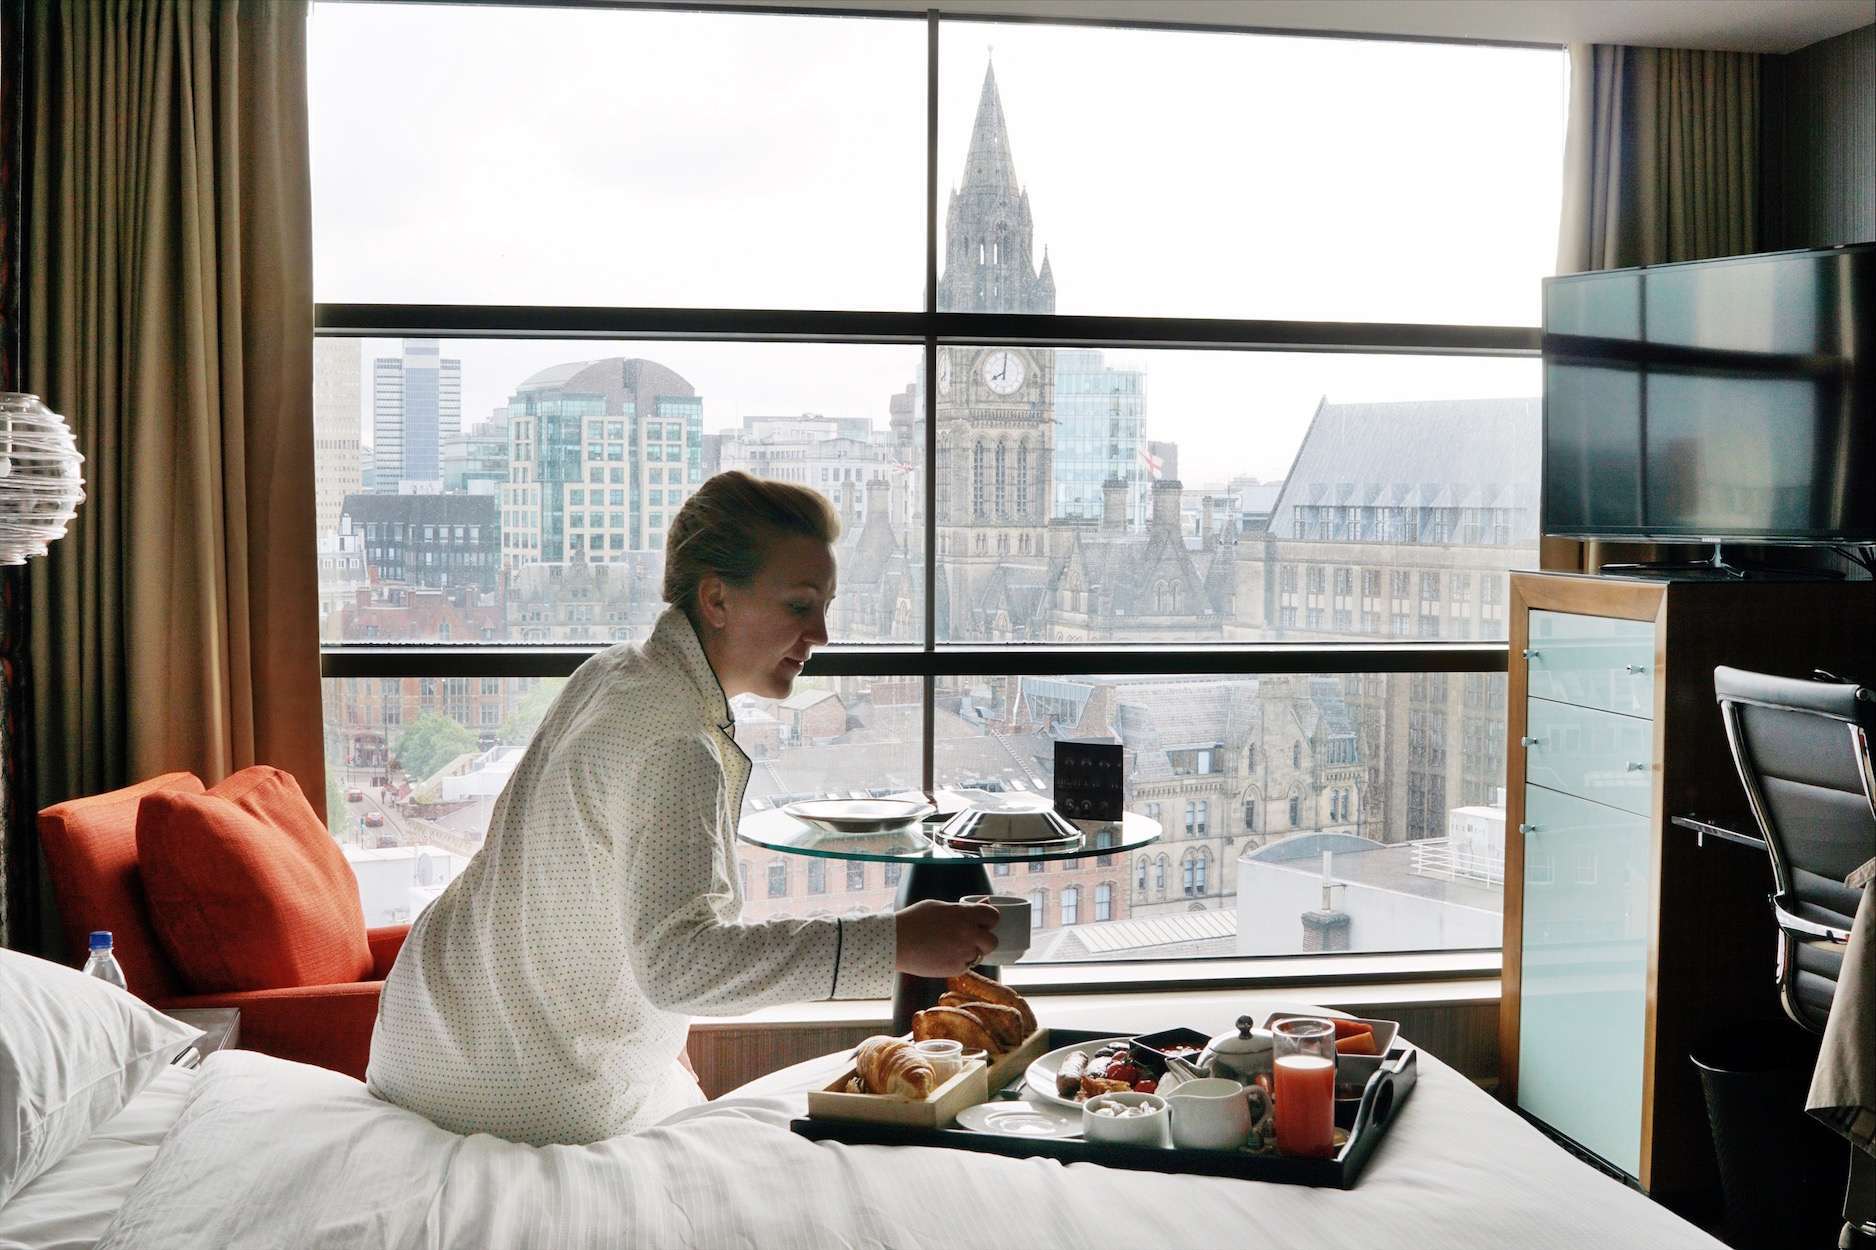 radisson blu edwardian in manchester - breakfast in bed!